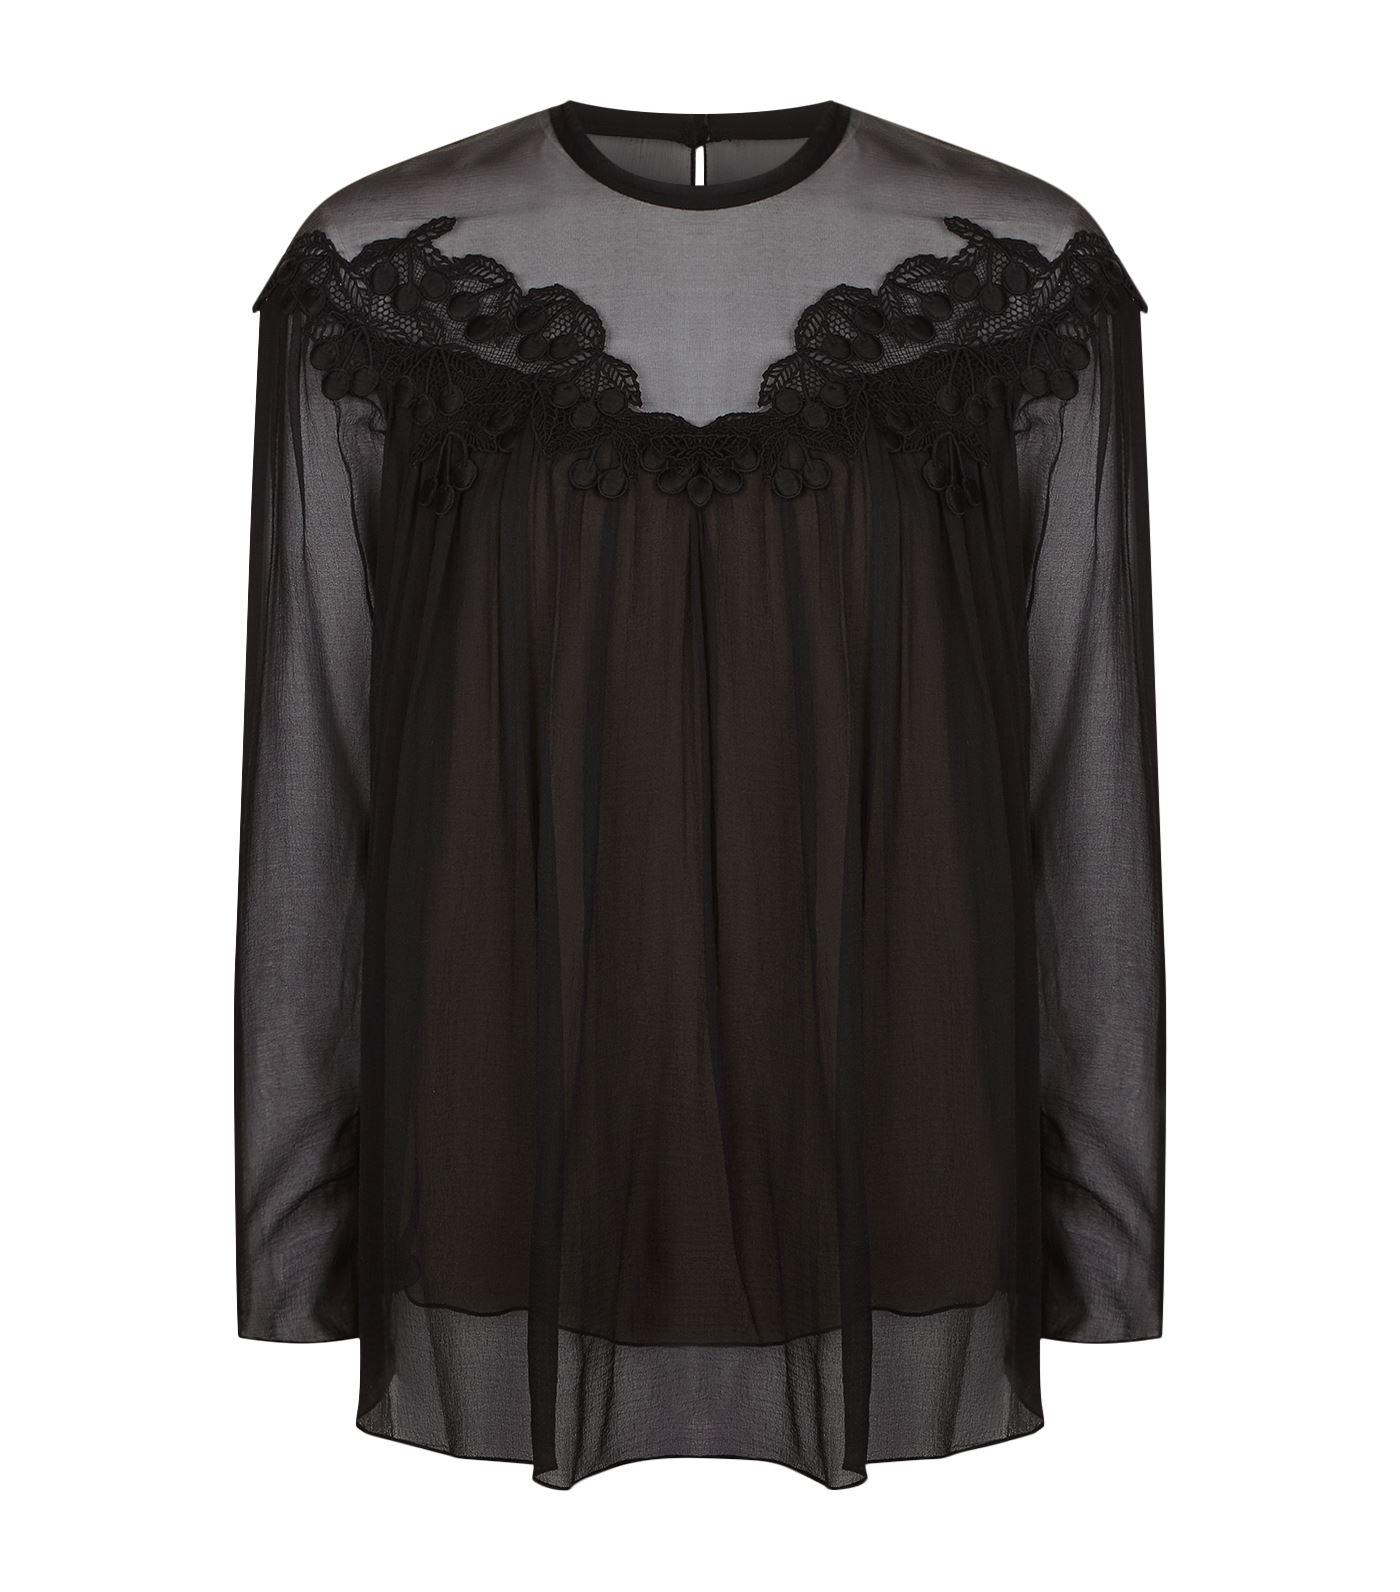 Chloé Flower Embroidered Top in Black